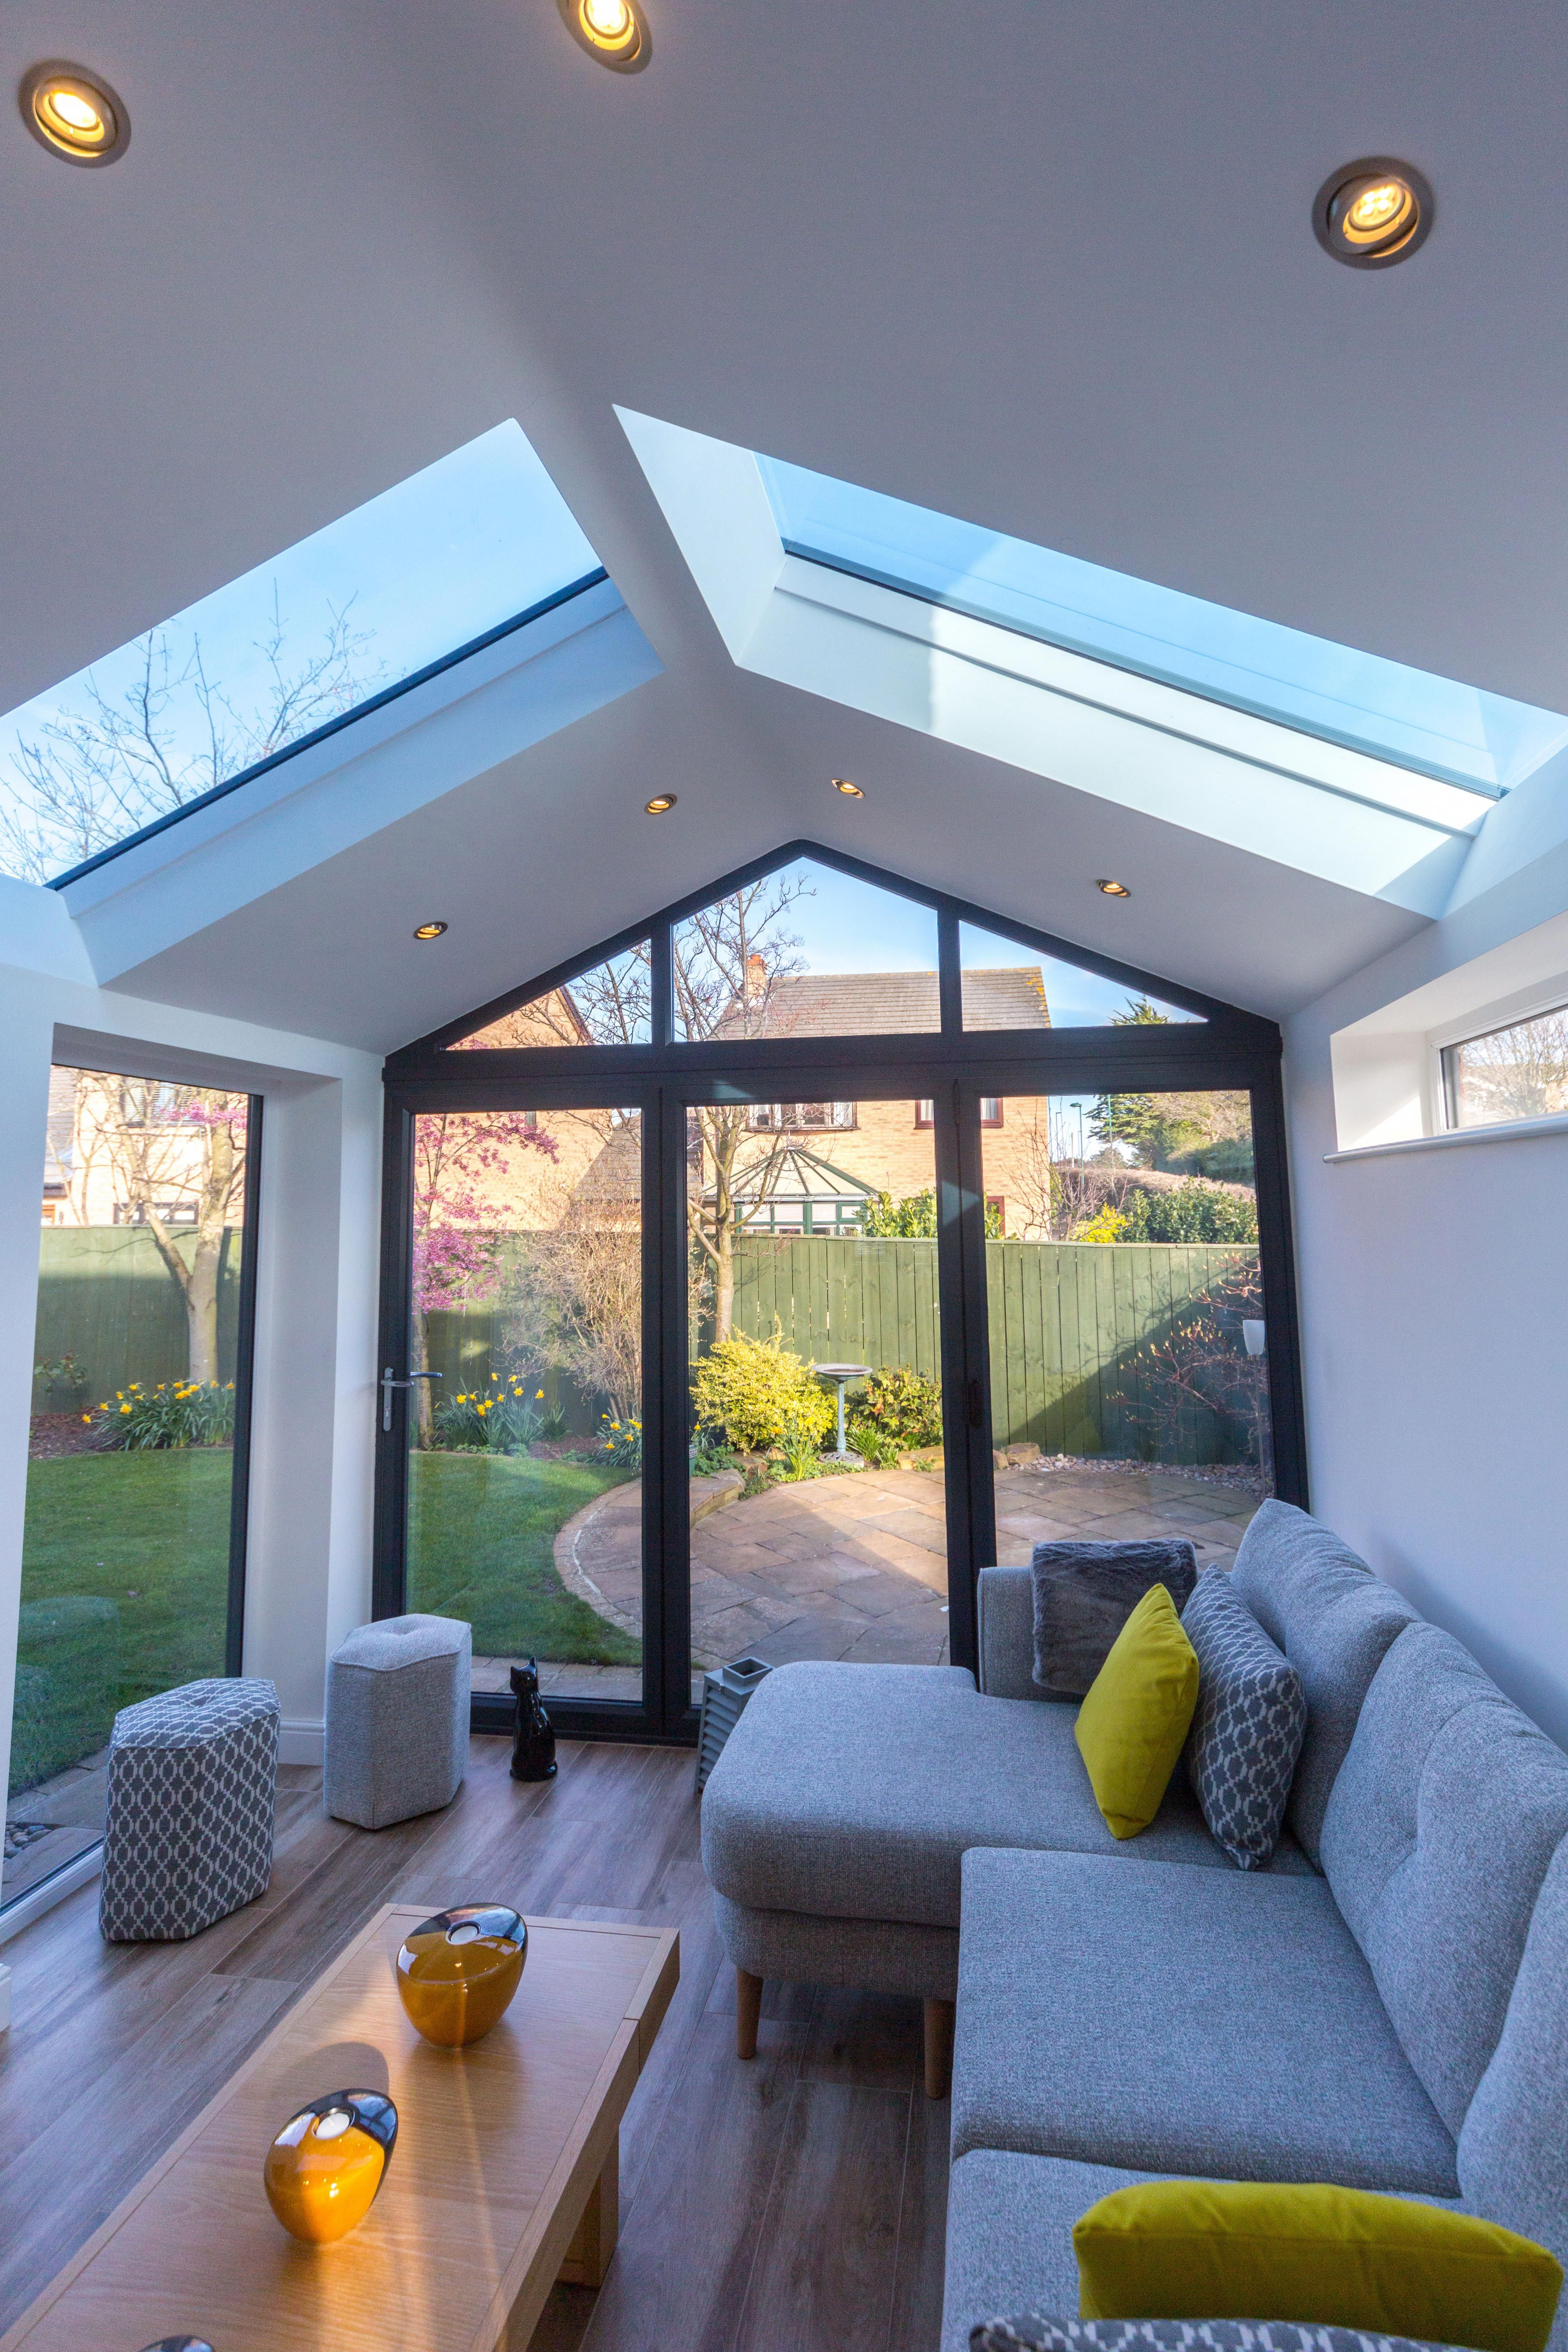 It S Impressive Take A Look At These 17 Inspiring Ideas All Pertaining To Stainedglasswindows House Extension Design Conservatory Interior House Extensions